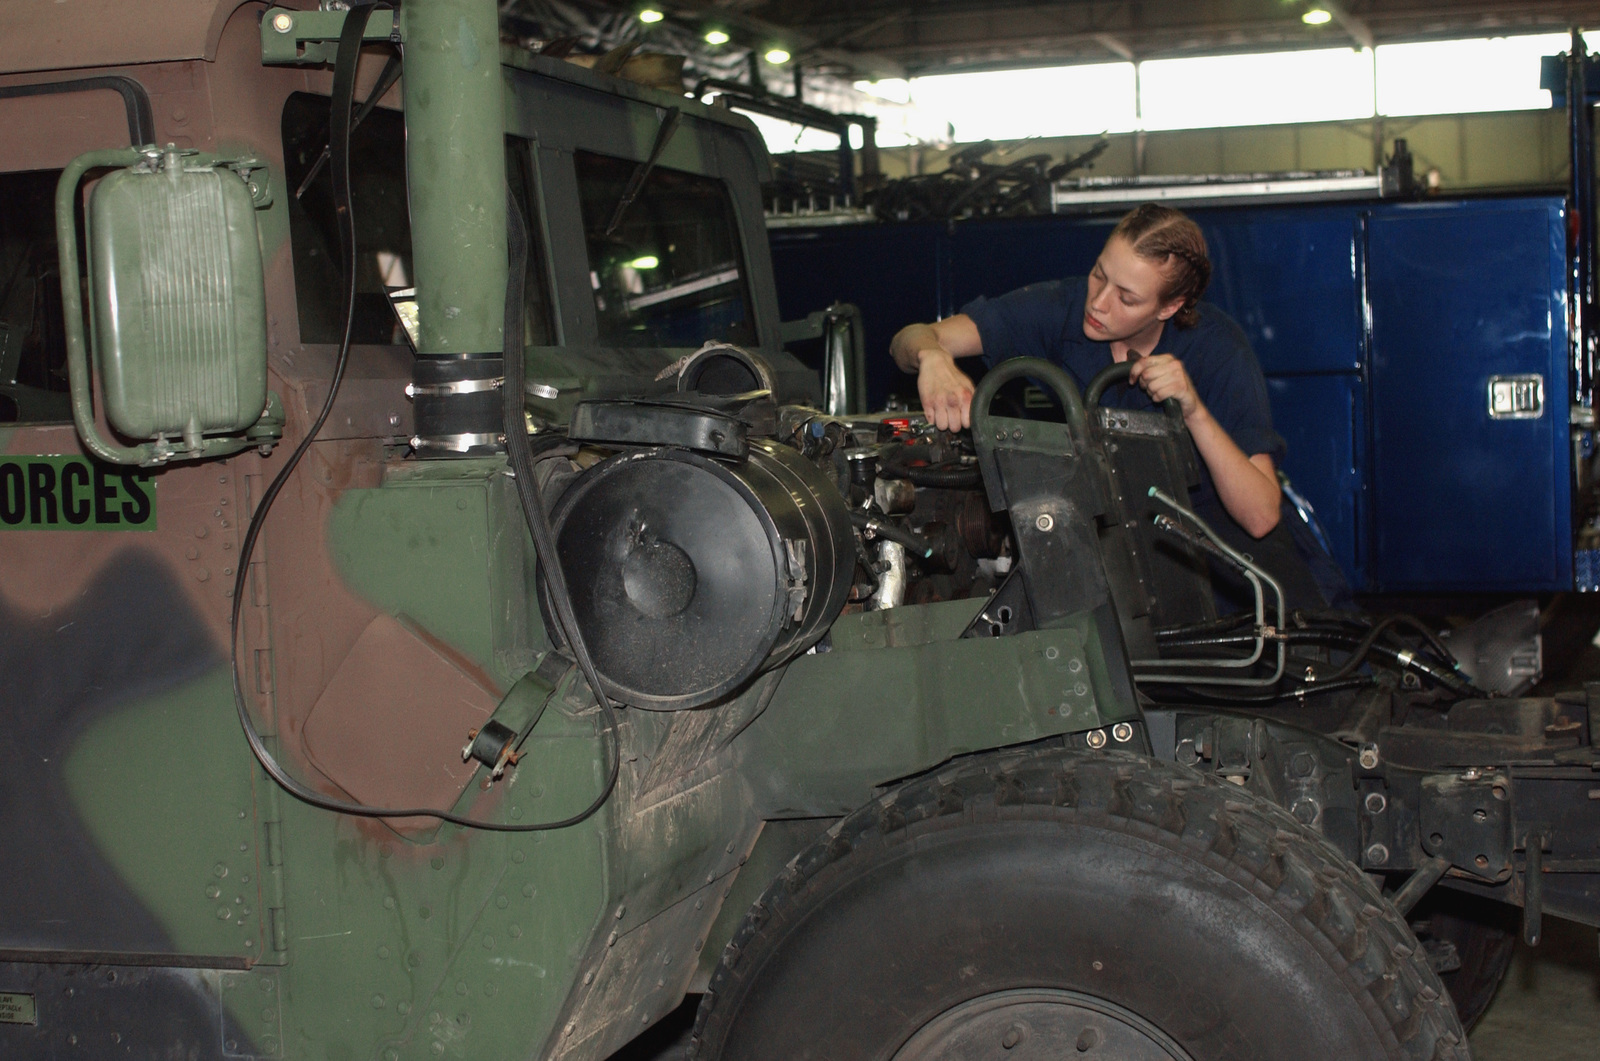 US Air Force (USAF) AIRMAN First Class (A1C) Megan Moon, Vehicle Maintenance Apprentice, 31st Transportation Squadron works performs maintenance on a M998 High-Mobility Multipurpose Wheeled Vehicle inside the maintenance shop at Aviano Air Base (AB), Italy